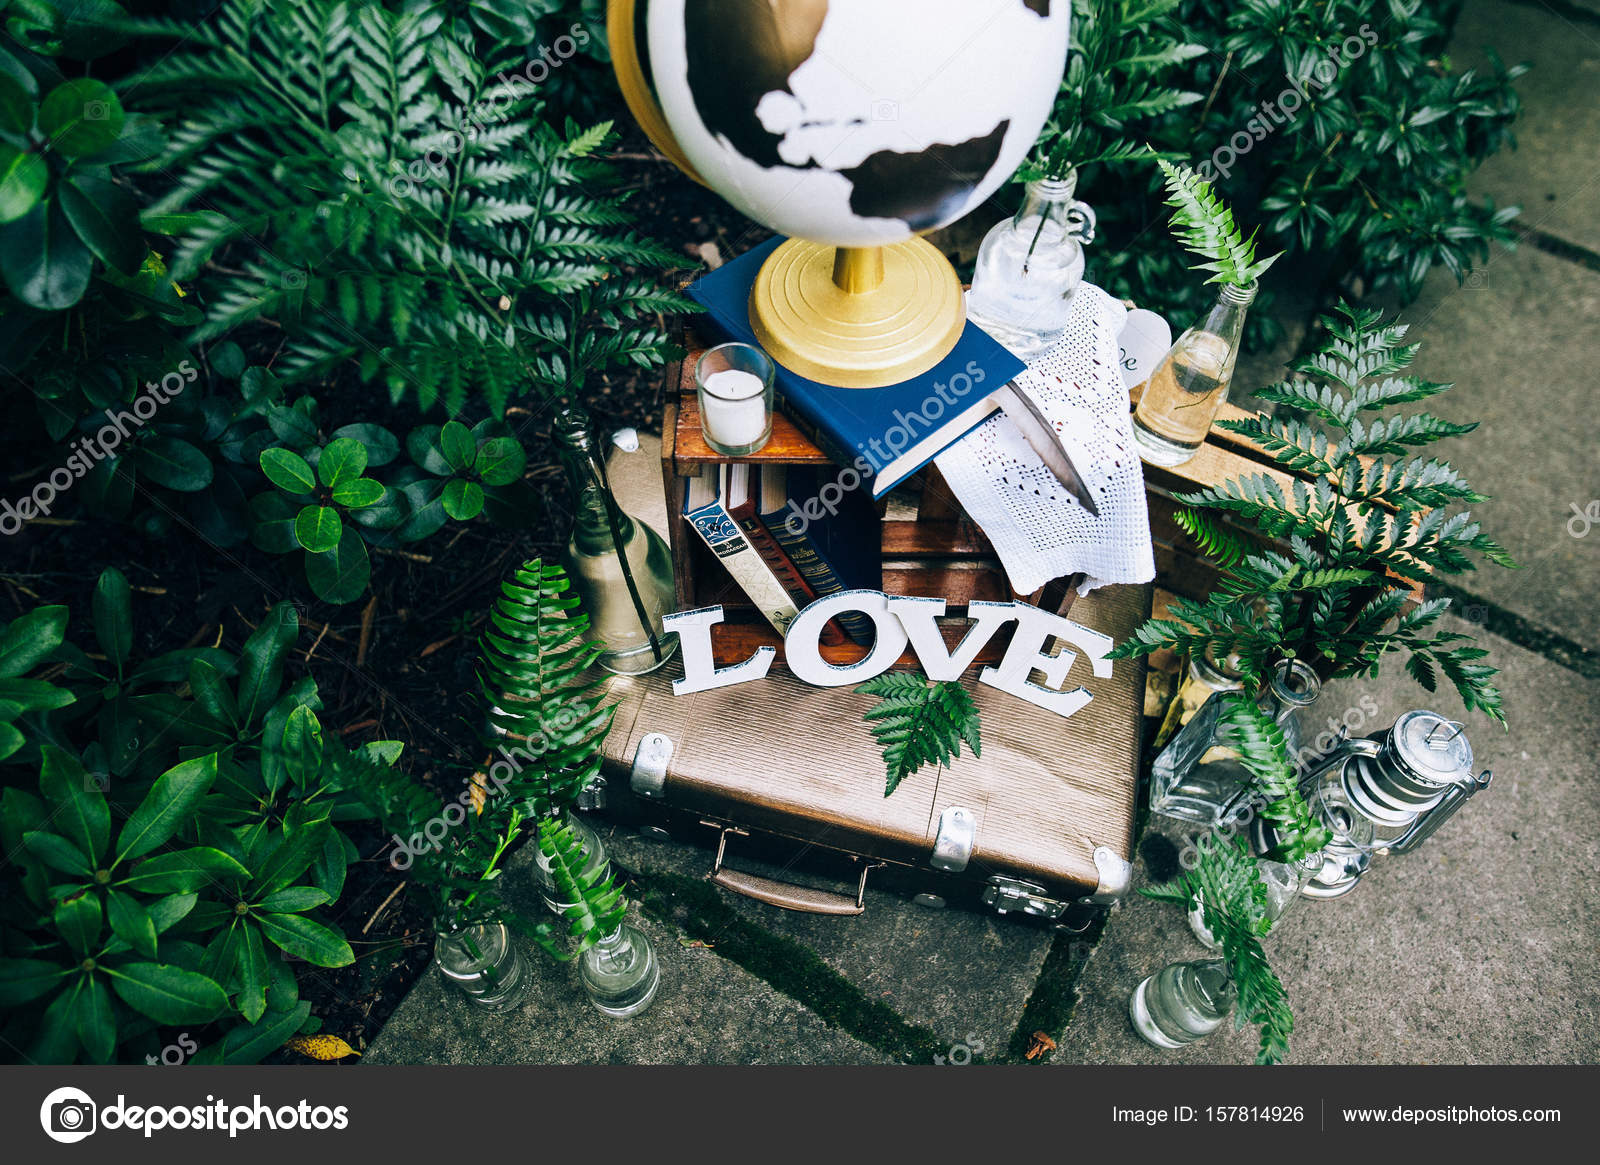 Wedding decorations placed on ground stock photo andreygribov wedding decorations placed on ground stock photo junglespirit Gallery